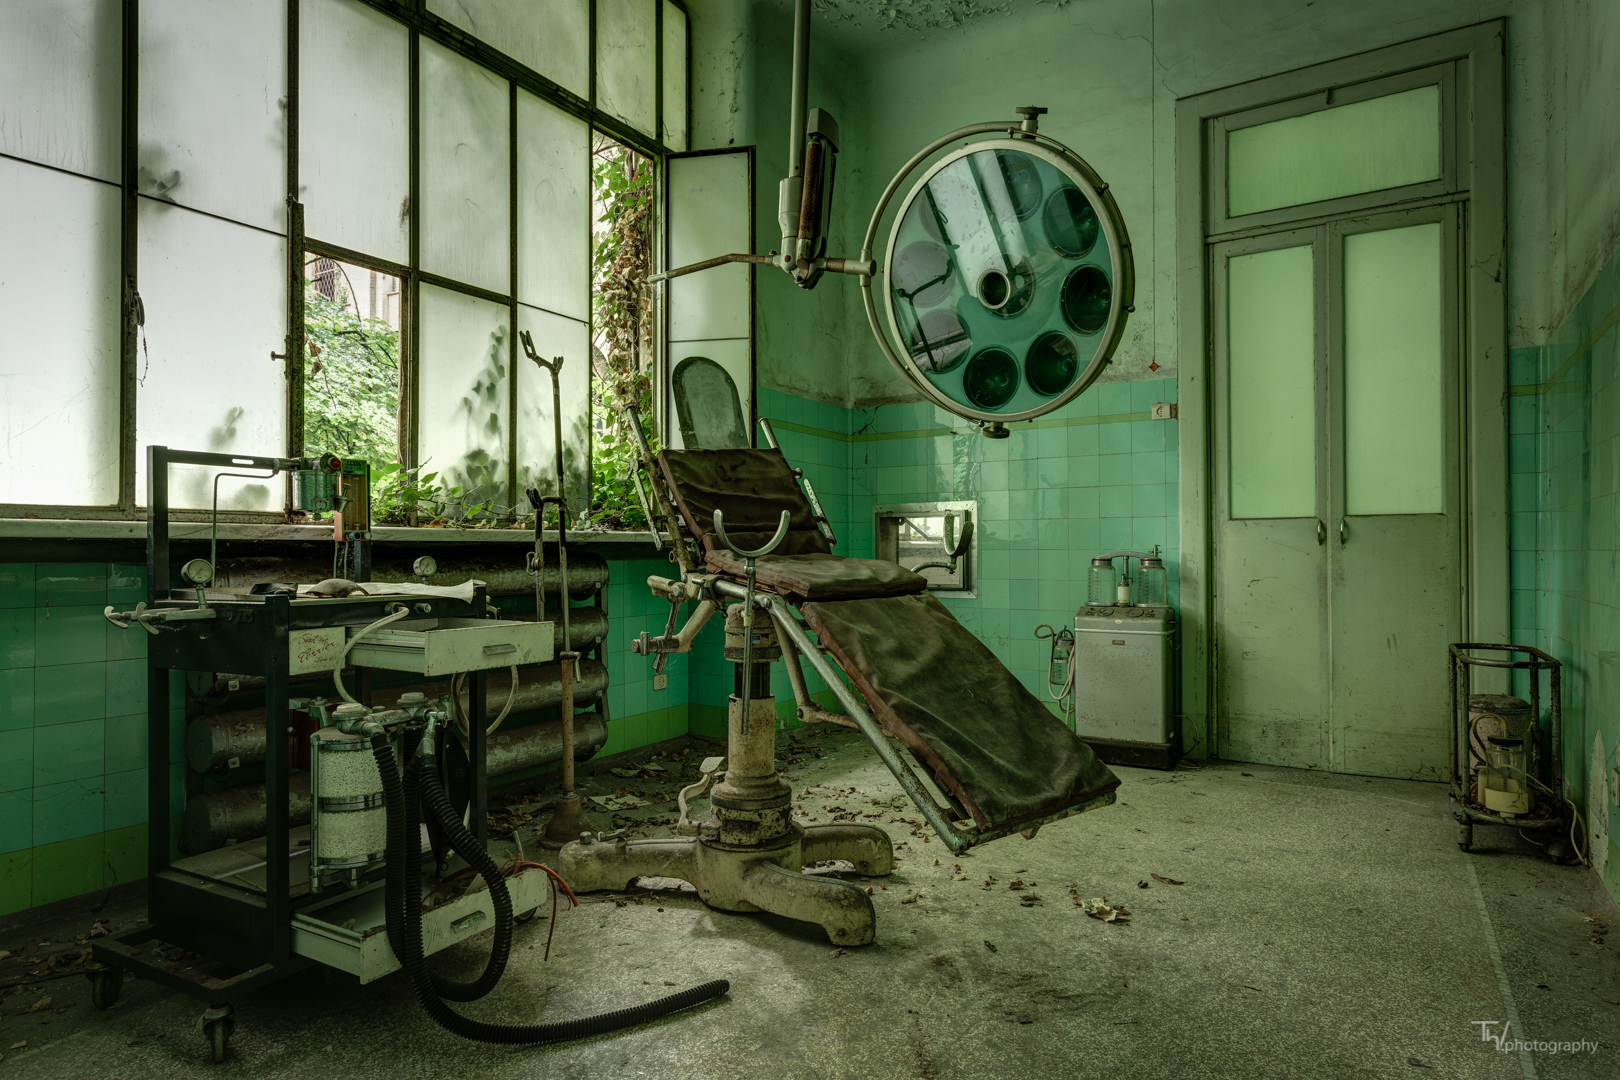 Haunting Photographs of Abandoned Asylums and Hospitals